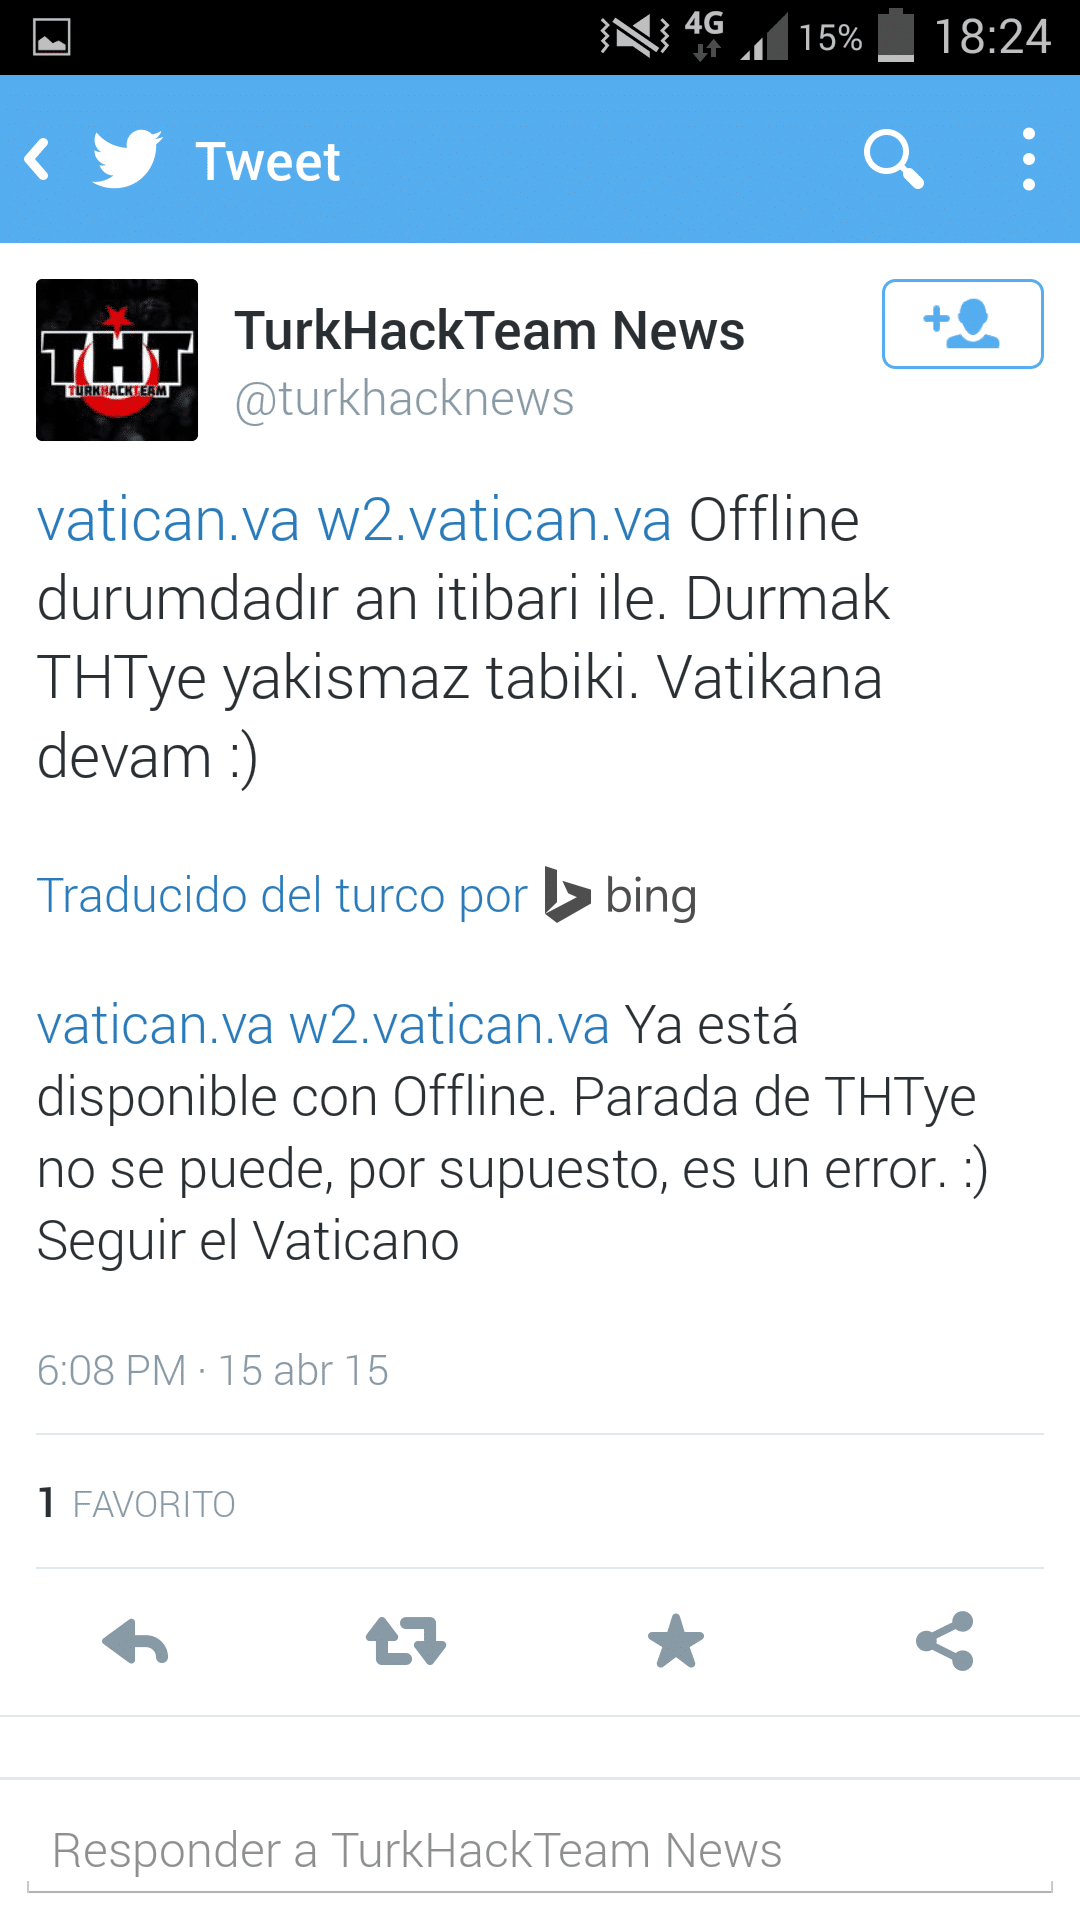 Hackers turcos atacan la web del vaticano infovaticana for Del website